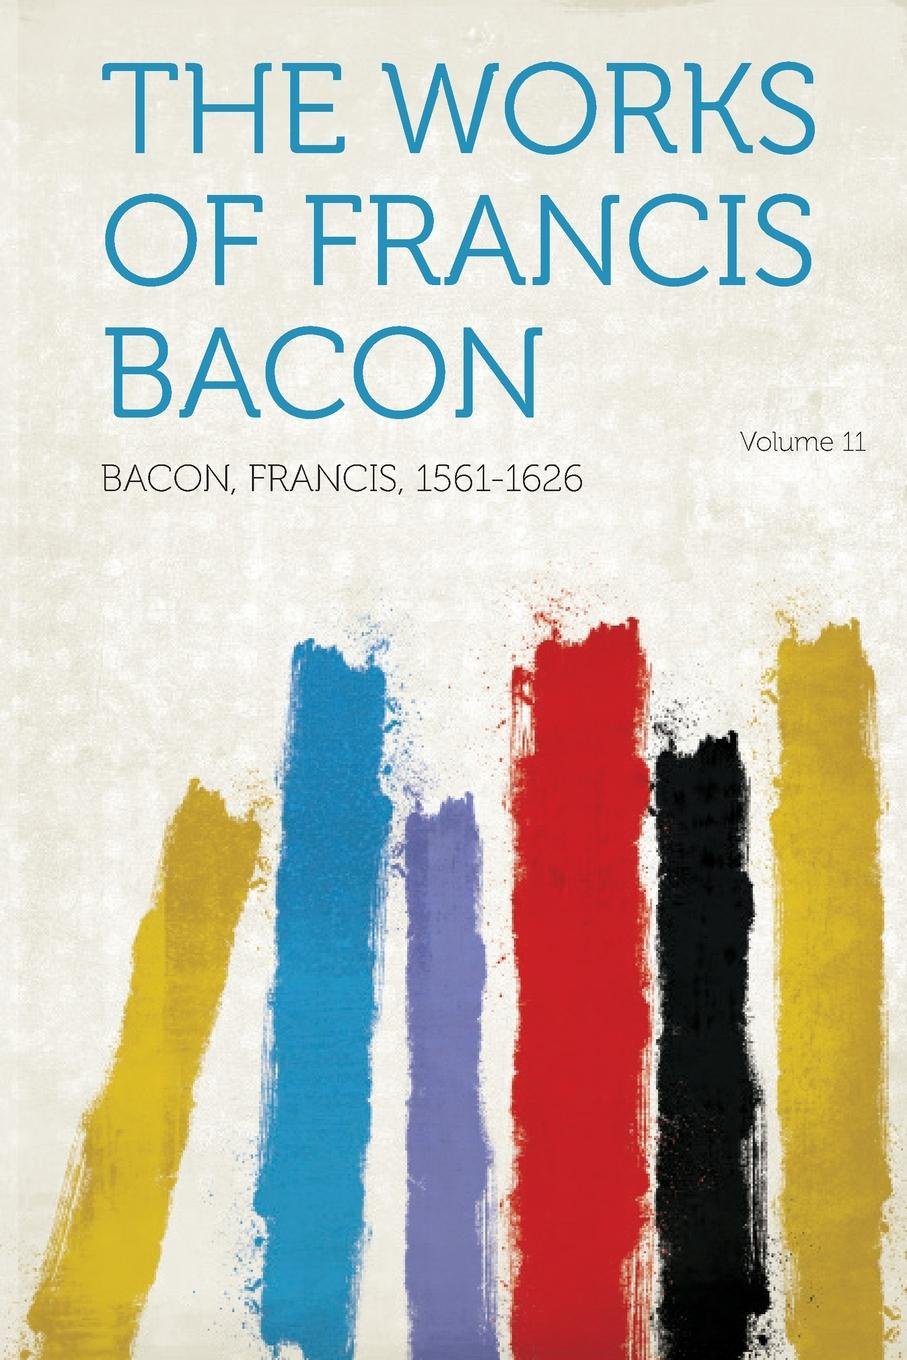 Francis Bacon The Works of Francis Bacon Volume 11 фрэнсис бэкон the works of francis bacon volume 11